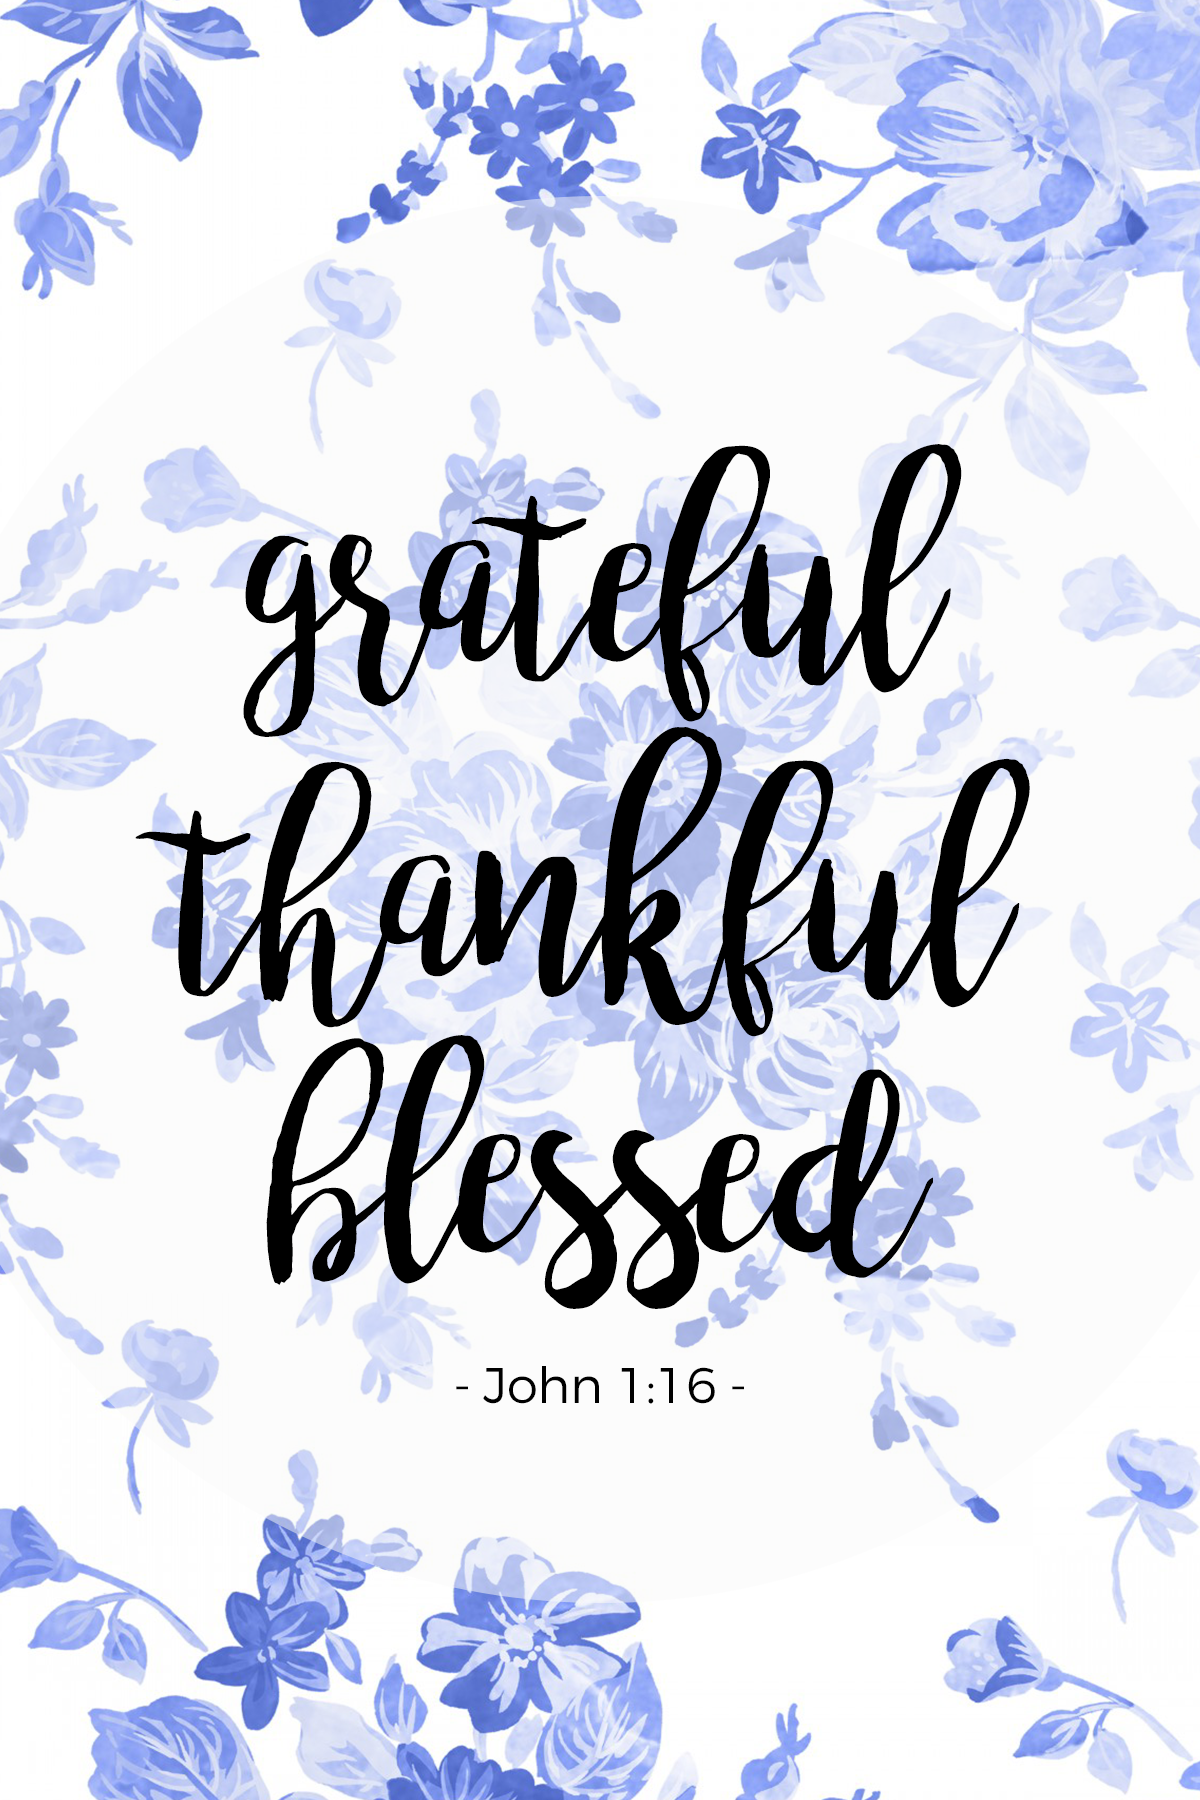 I Am Grateful Thankful Blessed. We Are Blessed. John 1:16